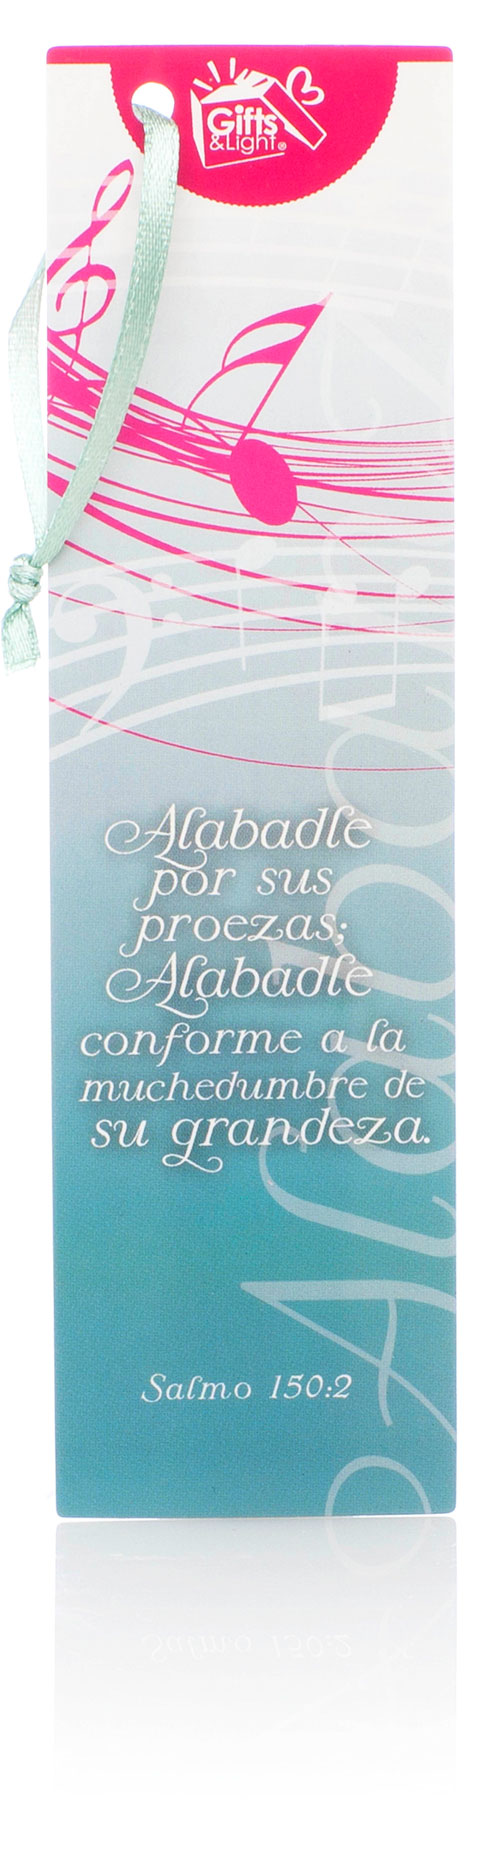 Alabadle por sus proezas... Punto de libro Gifts and Light